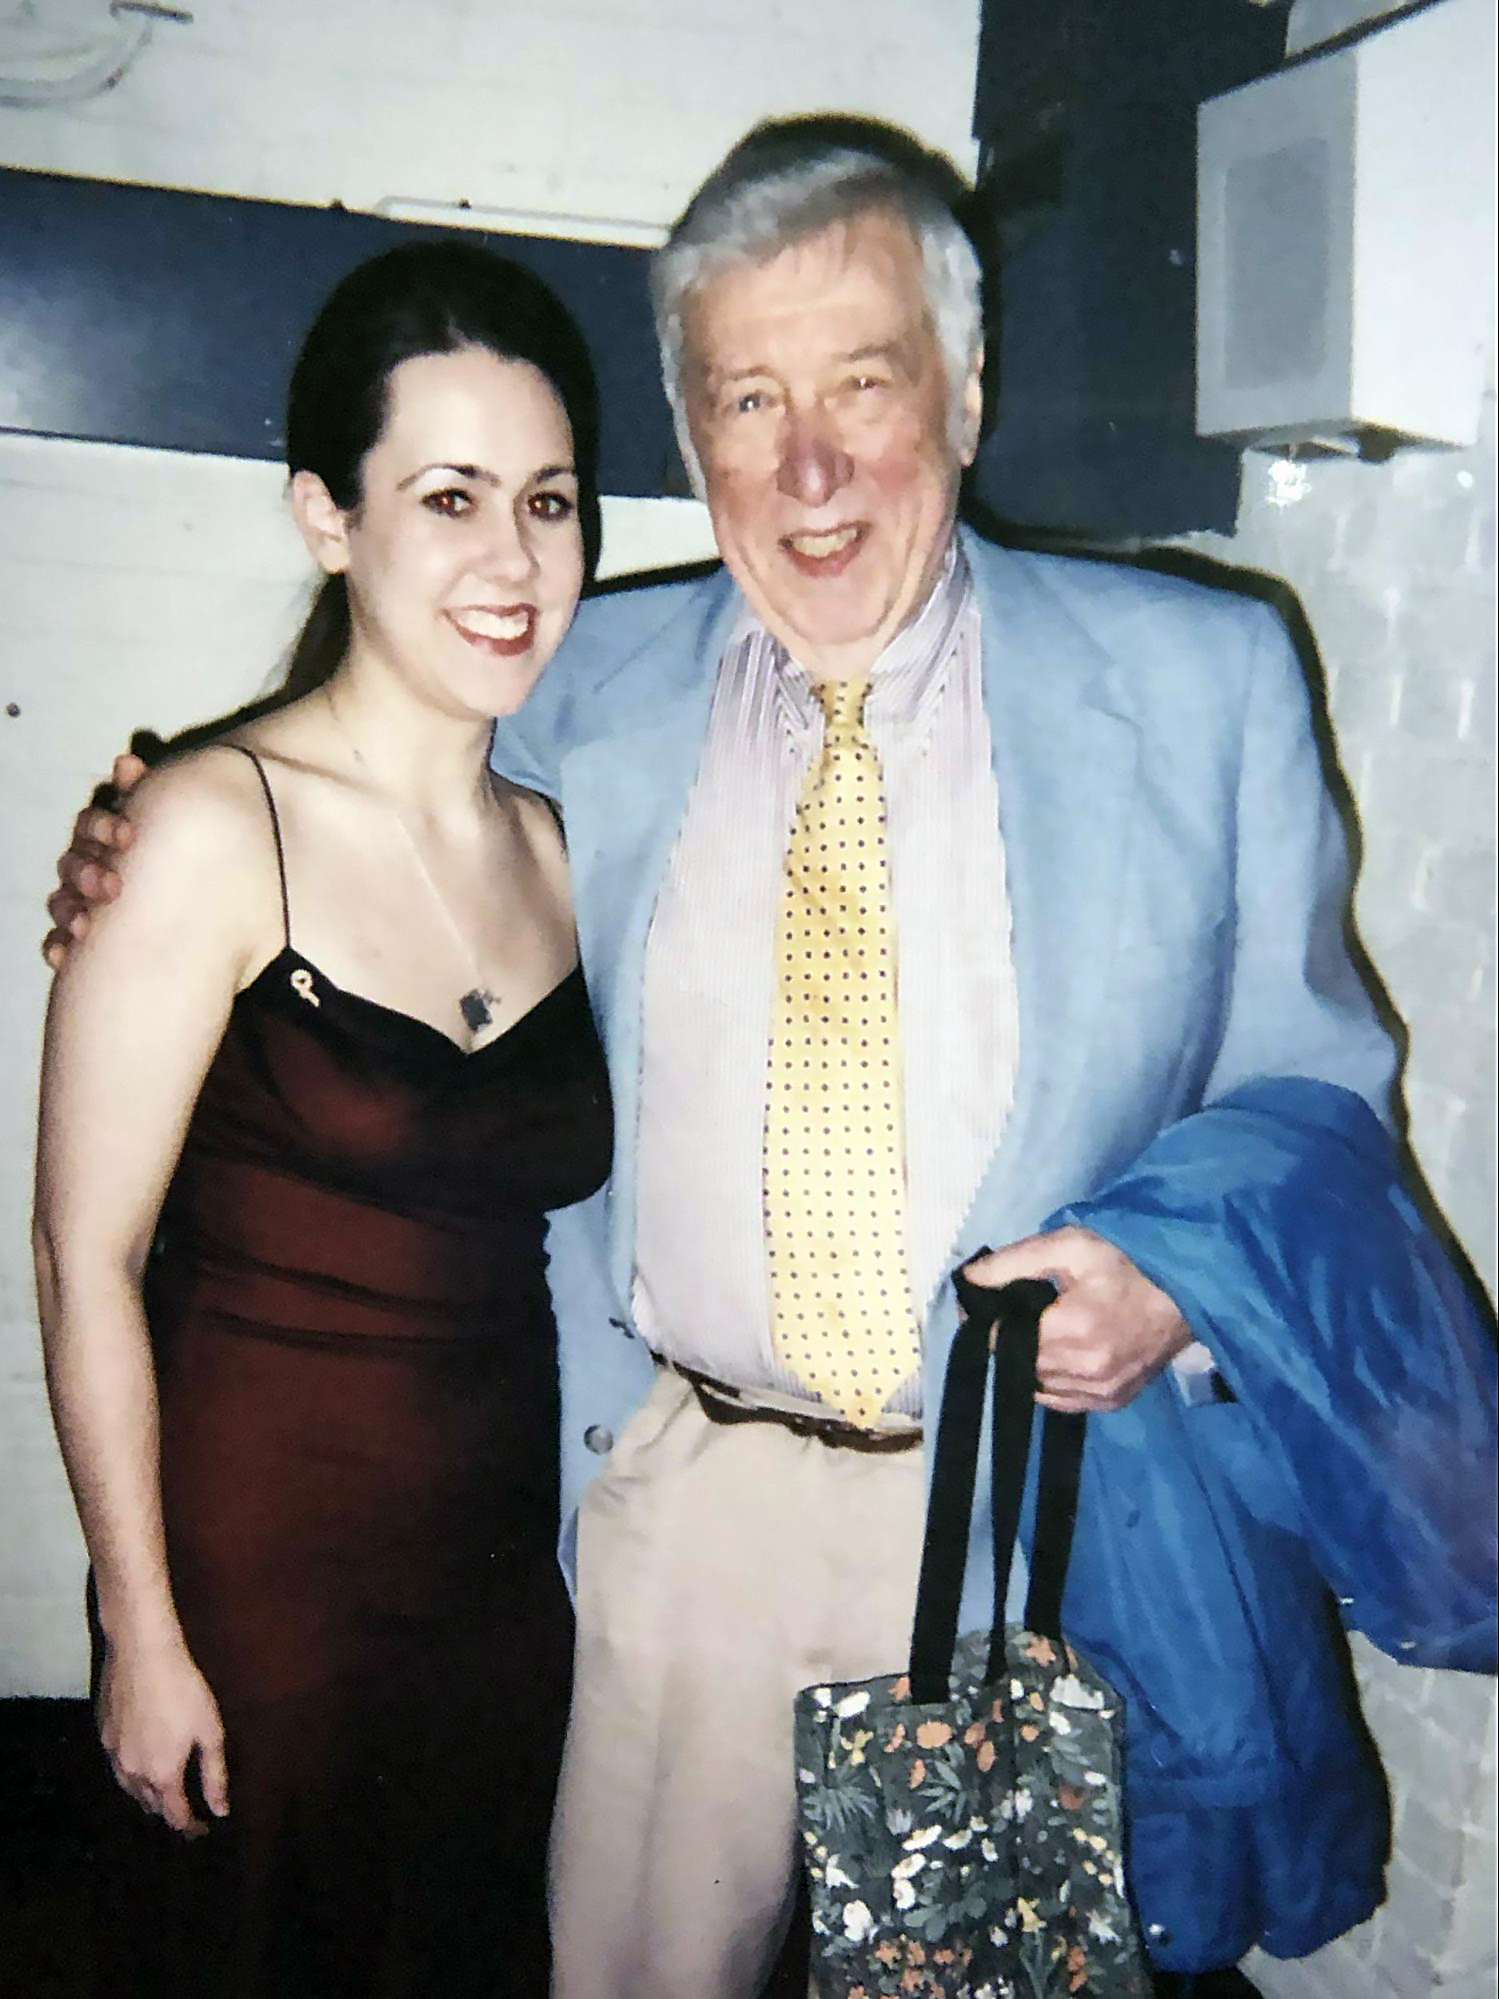 Me with Gunther at NEC after a performance of John Zorn's  Contes De Fées